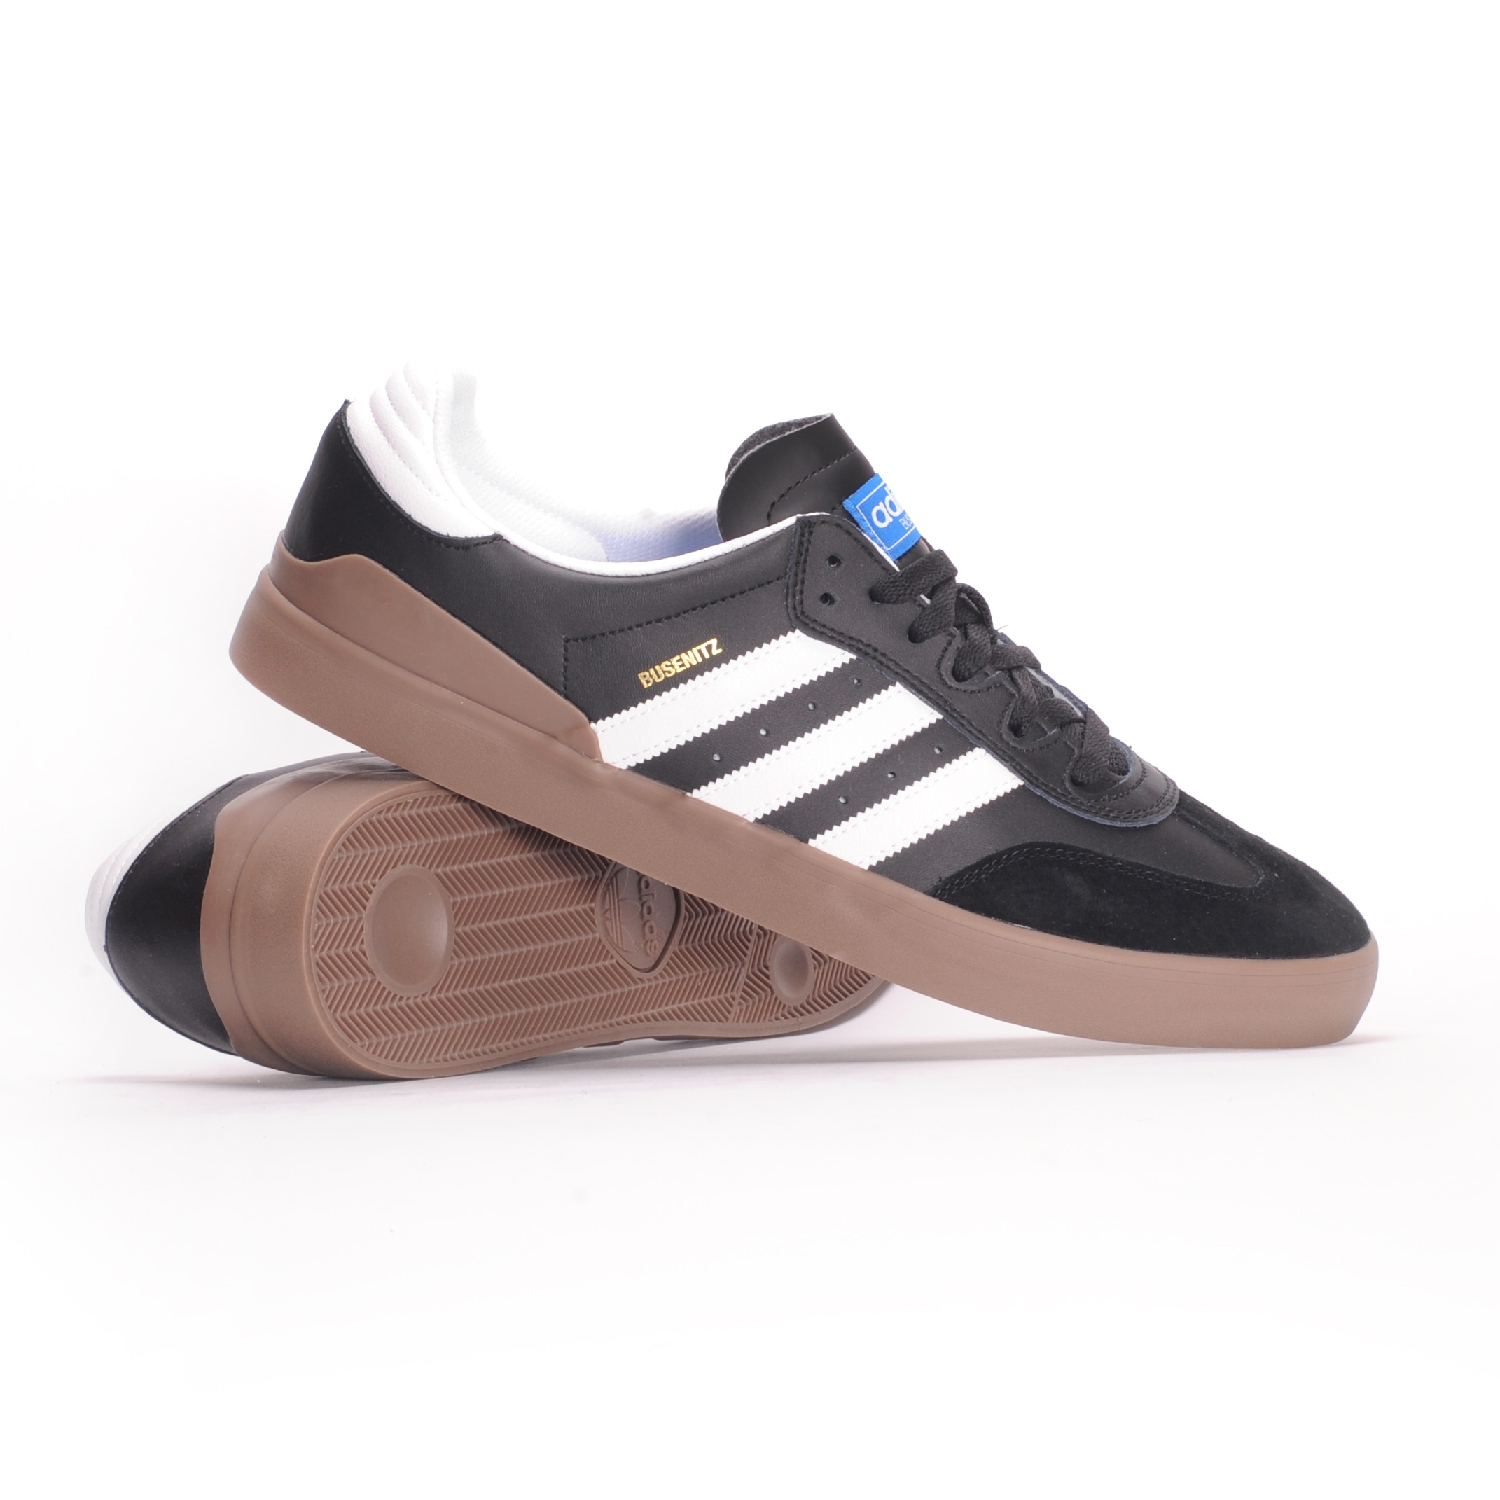 adidas Busenitz Vulc RX (Core Black White Gum 5) Men s Skate Shoes 1af9927f1